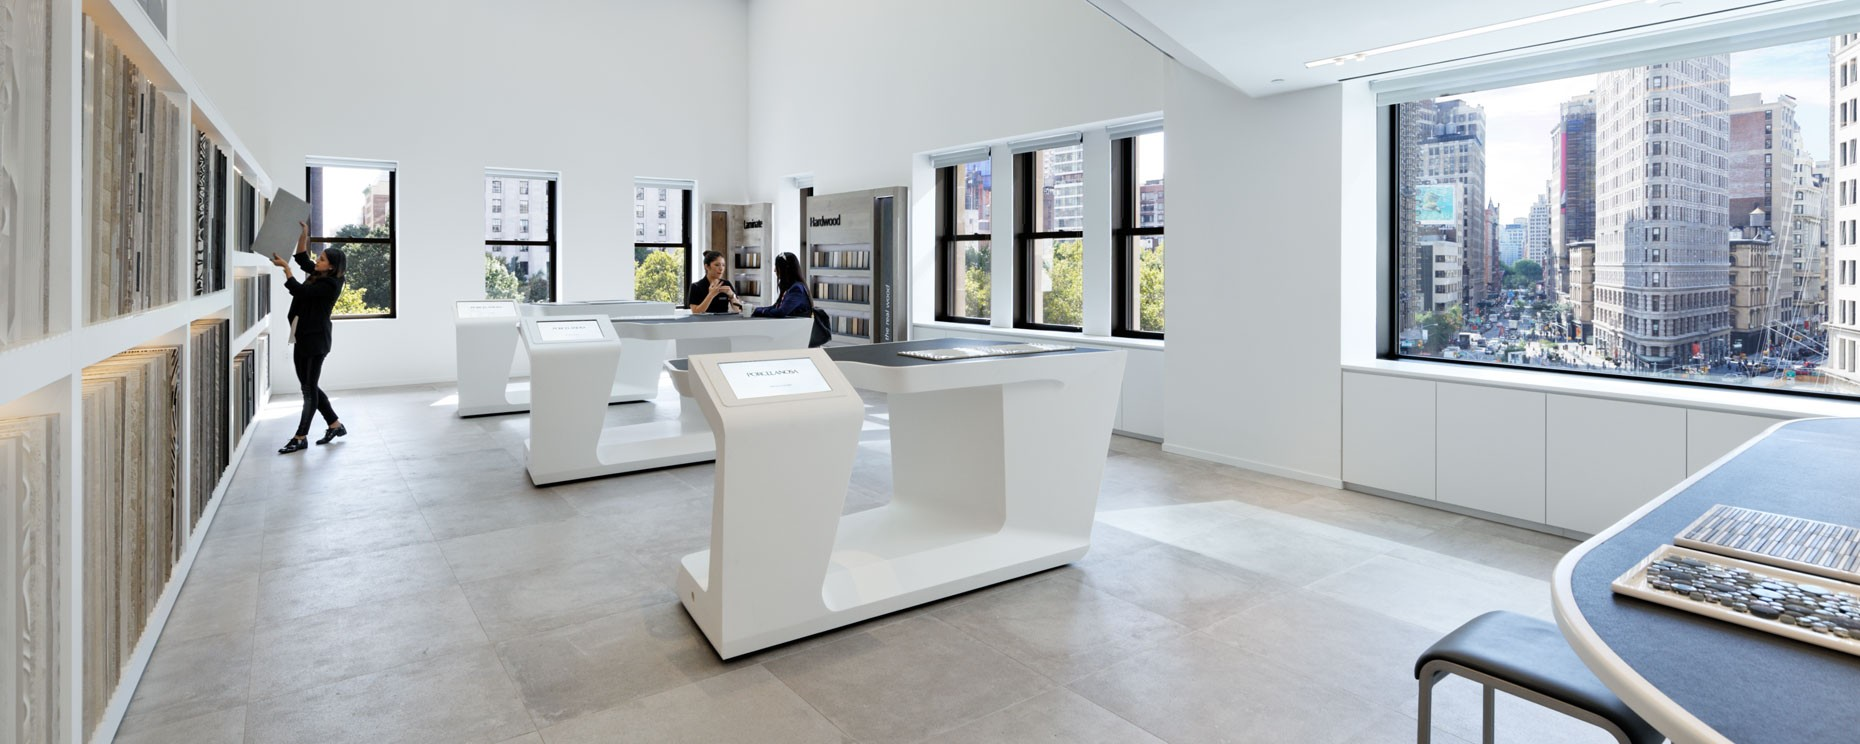 Porcelanosa Showroom, New York City. Thermoformed IPAD display fixtures